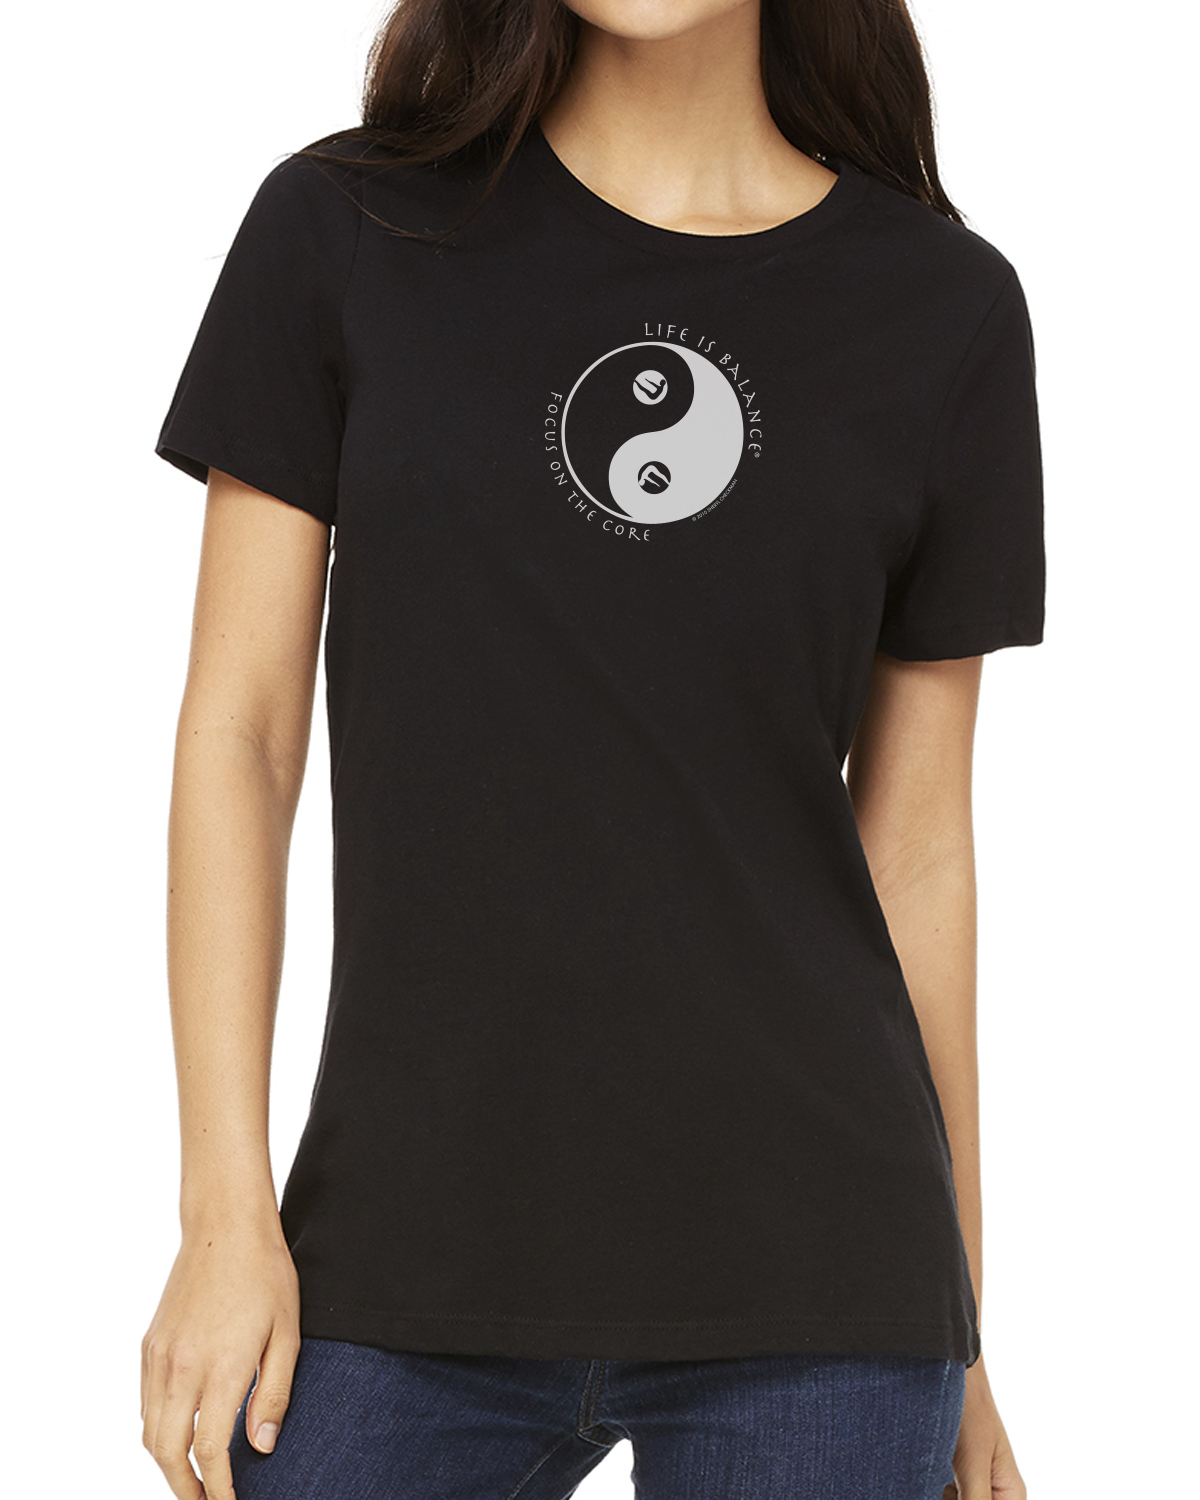 Pilates T-Shirt for Women (Black)